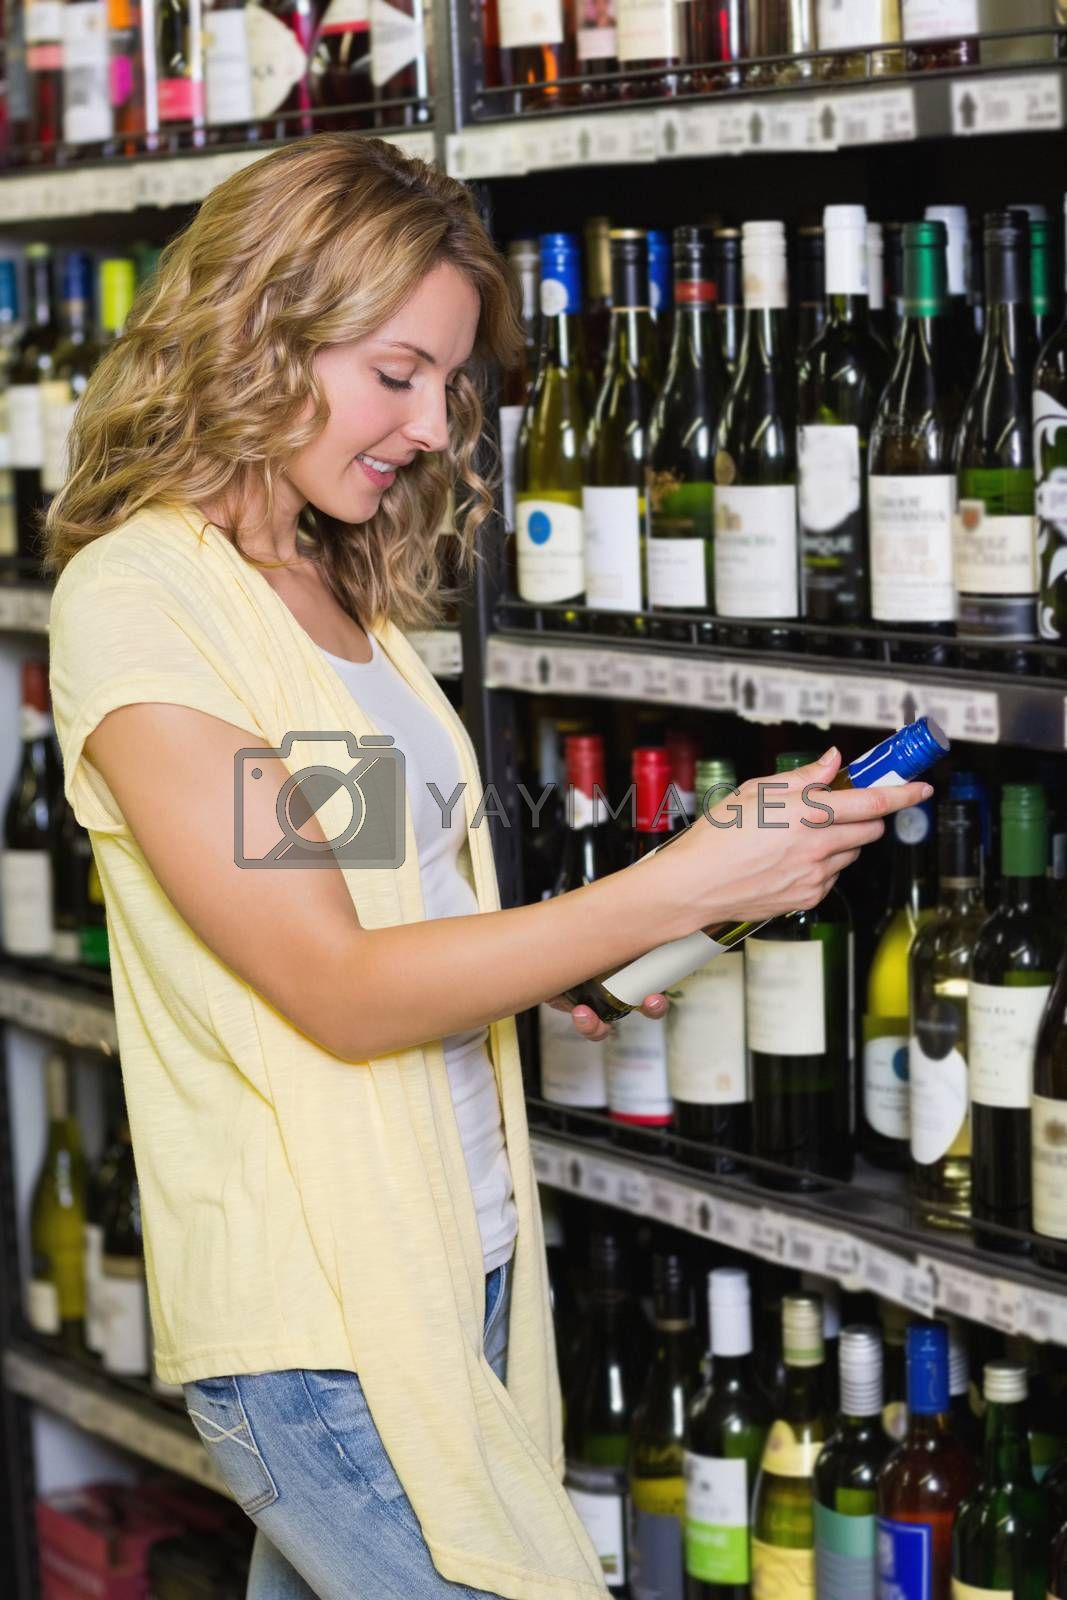 Royalty free image of Smiling pretty blonde woman looking at wine bottle  by Wavebreakmedia